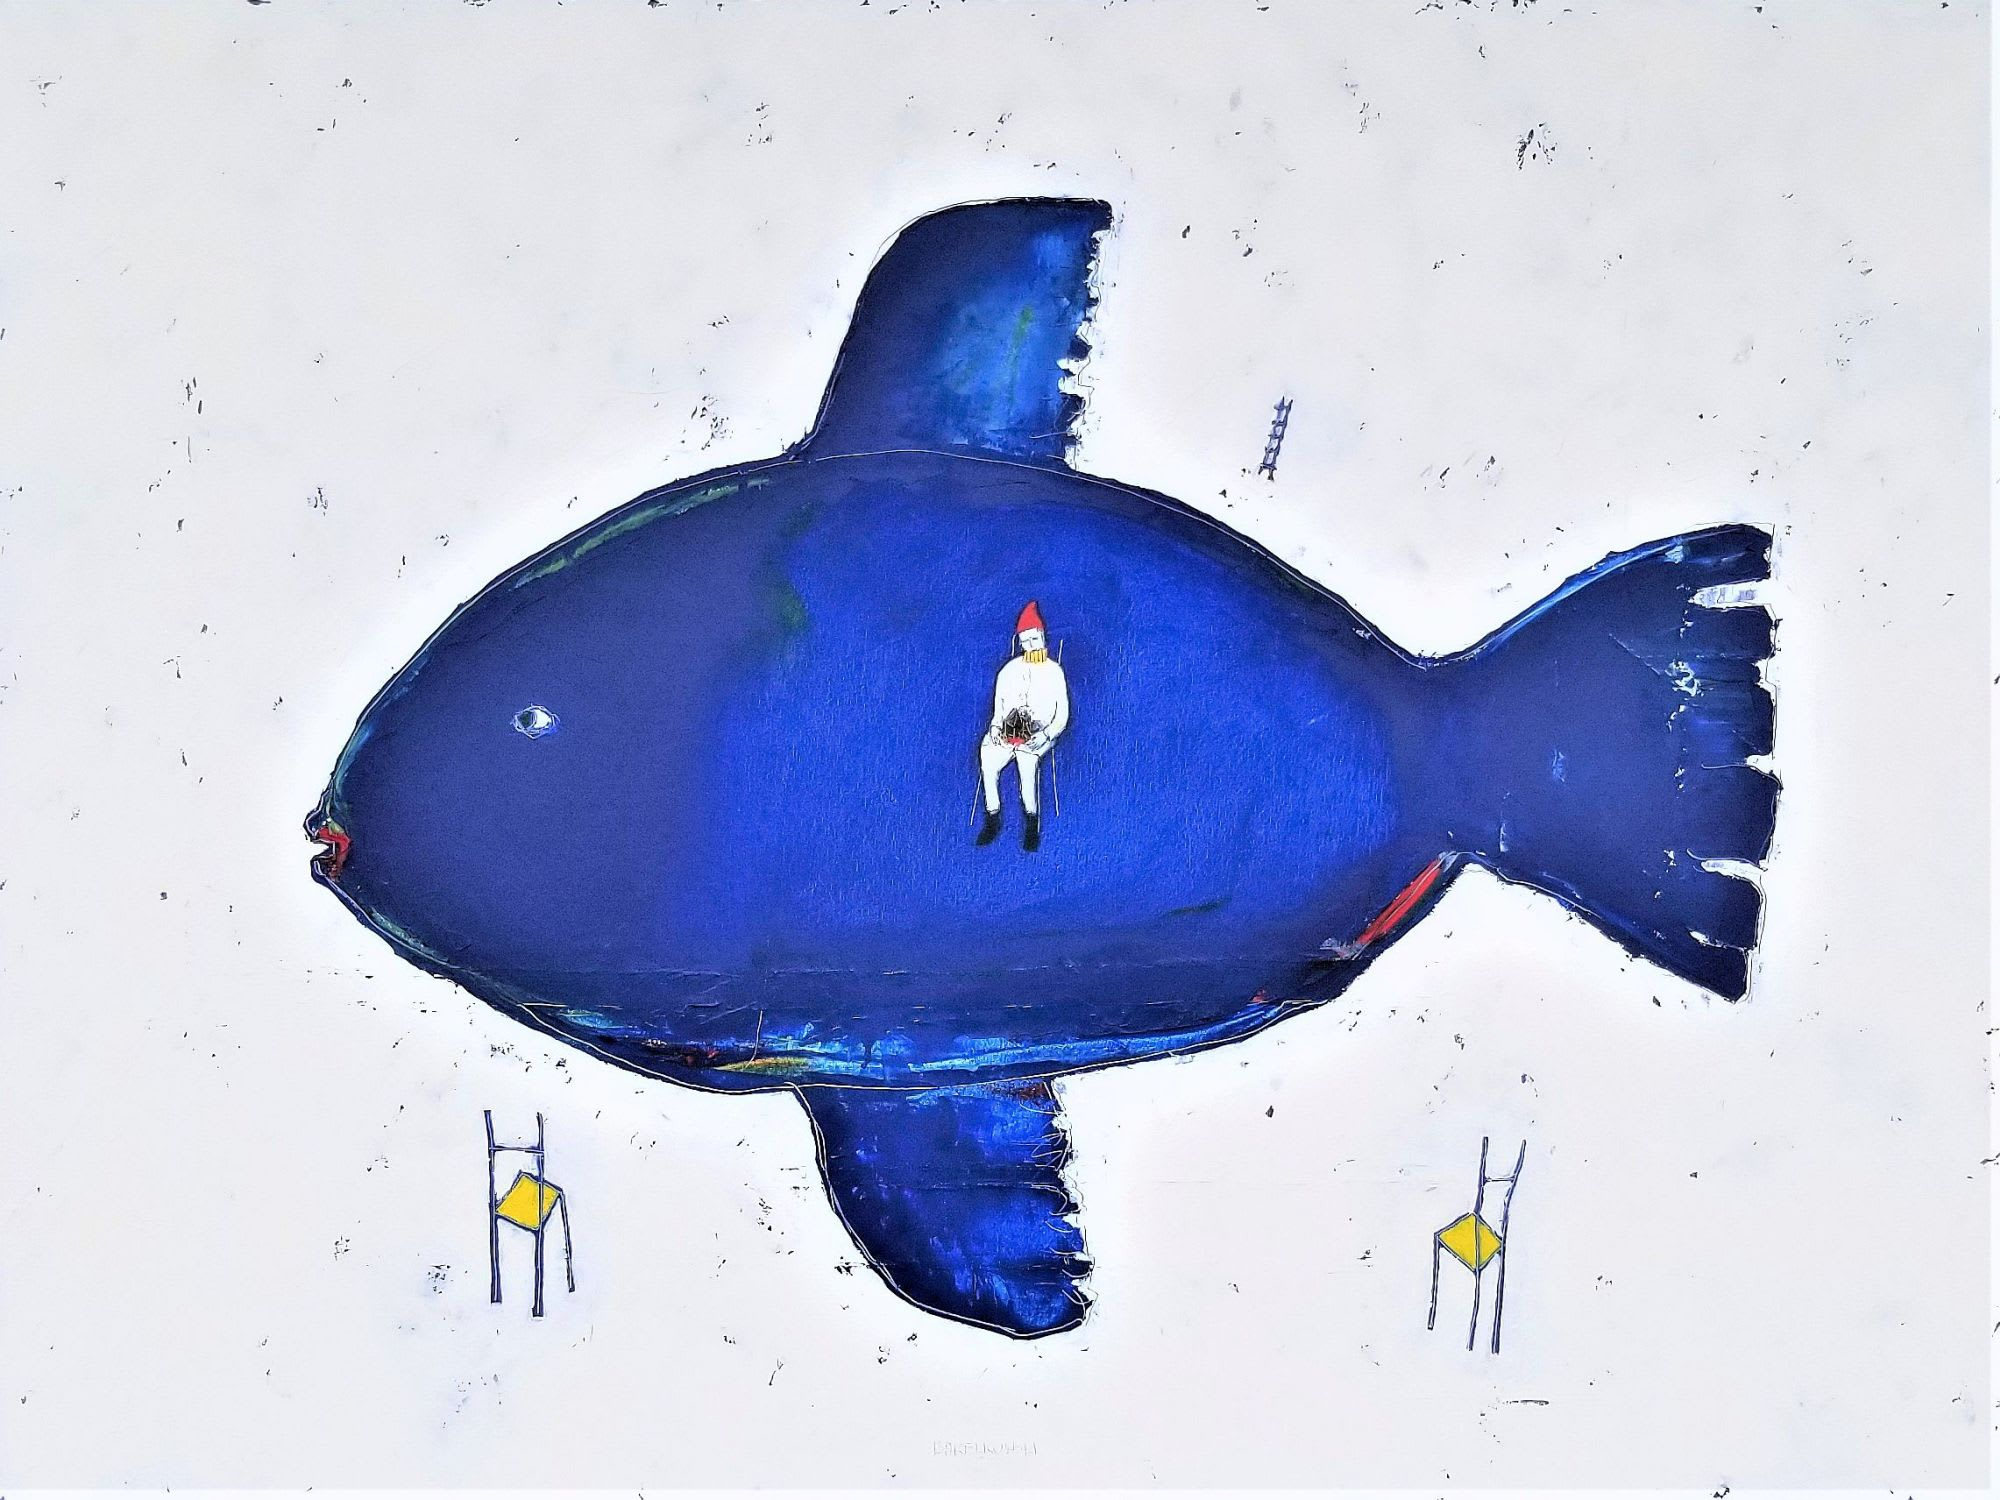 'Blue Fish' by Peter Barelkowski at Gallery 133